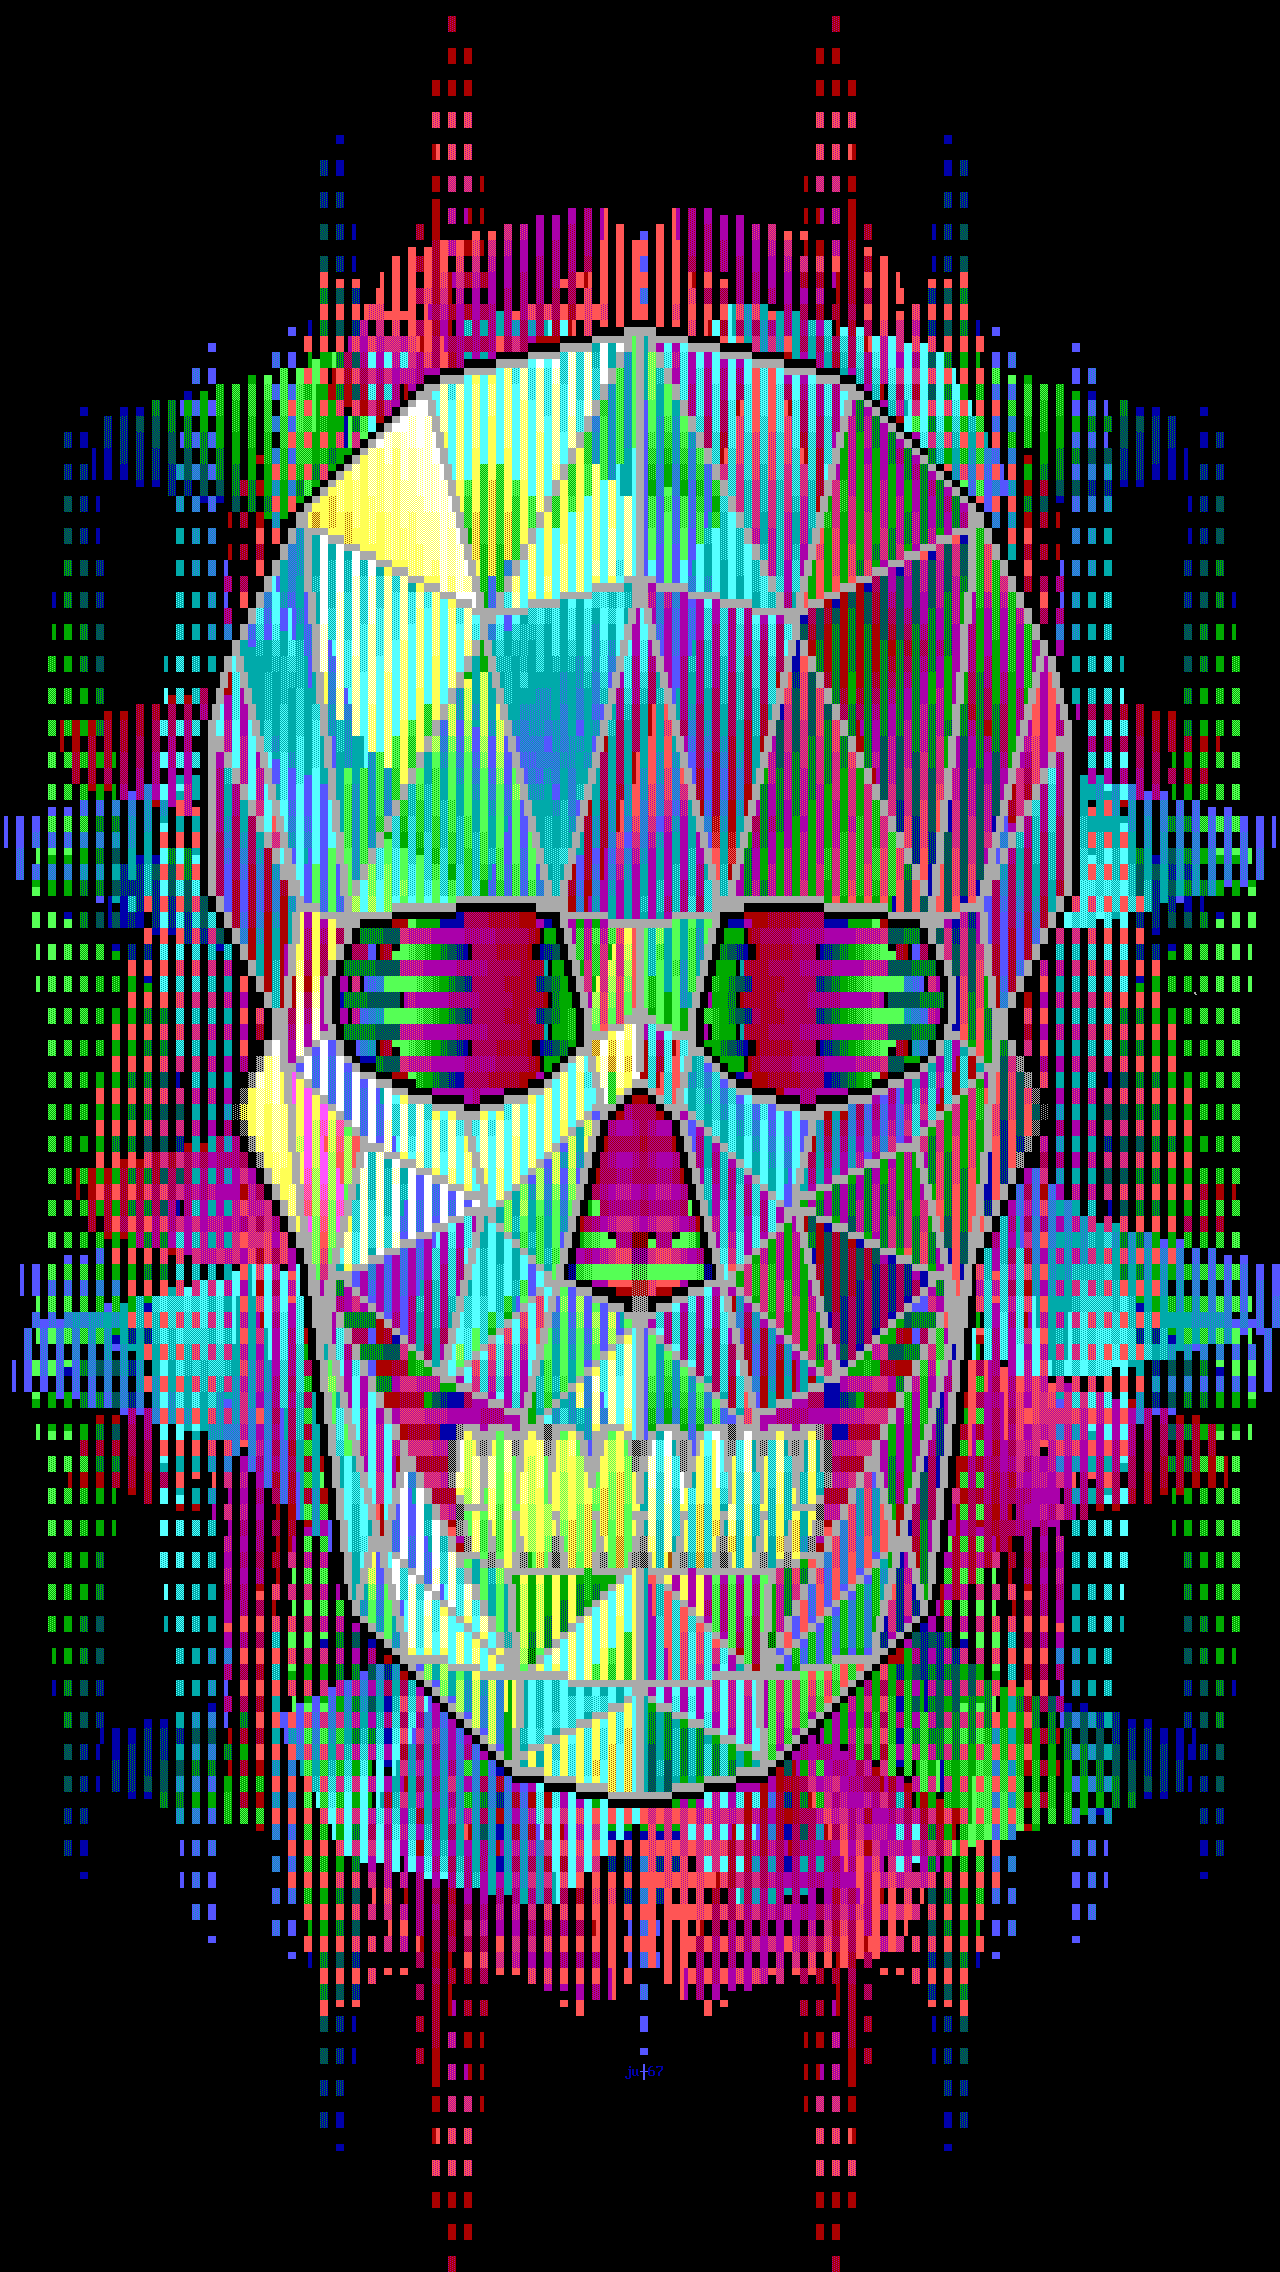 ju-geoskull.ans, skull, colors, colorful, poster, judas, ju, fractal, red, purple, blue, gree